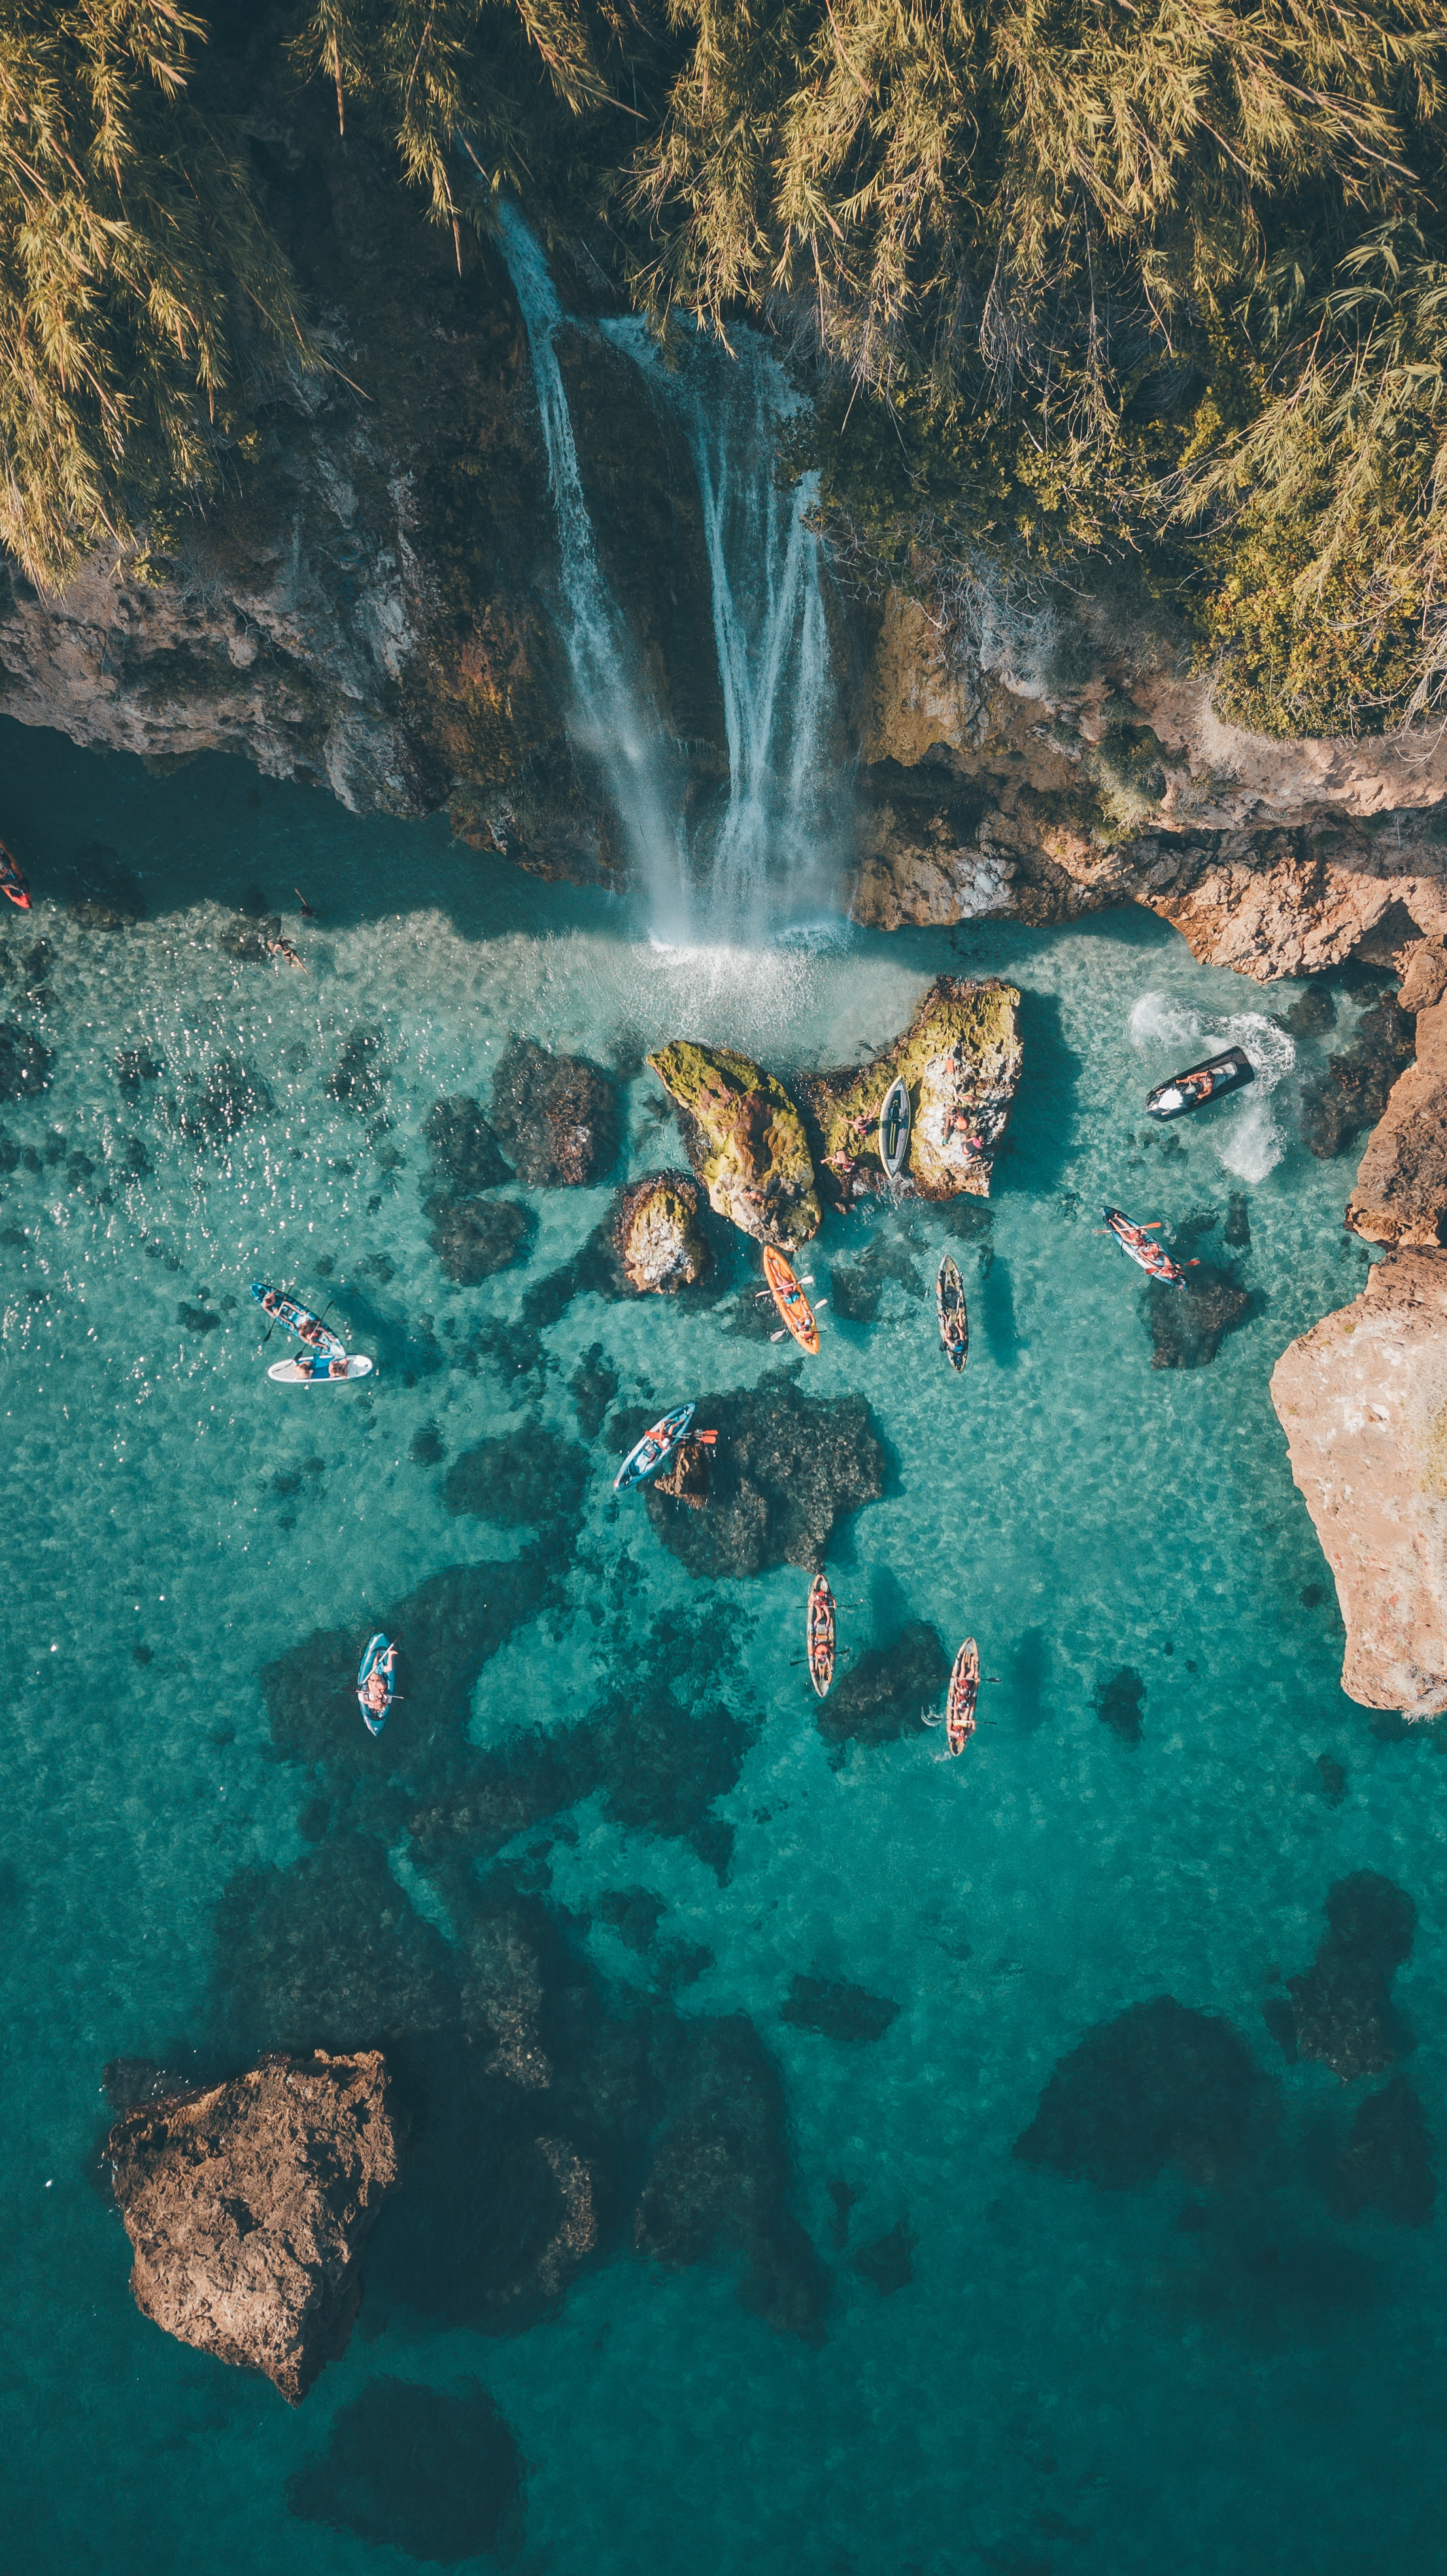 aerial photography of waterfalls and ocean